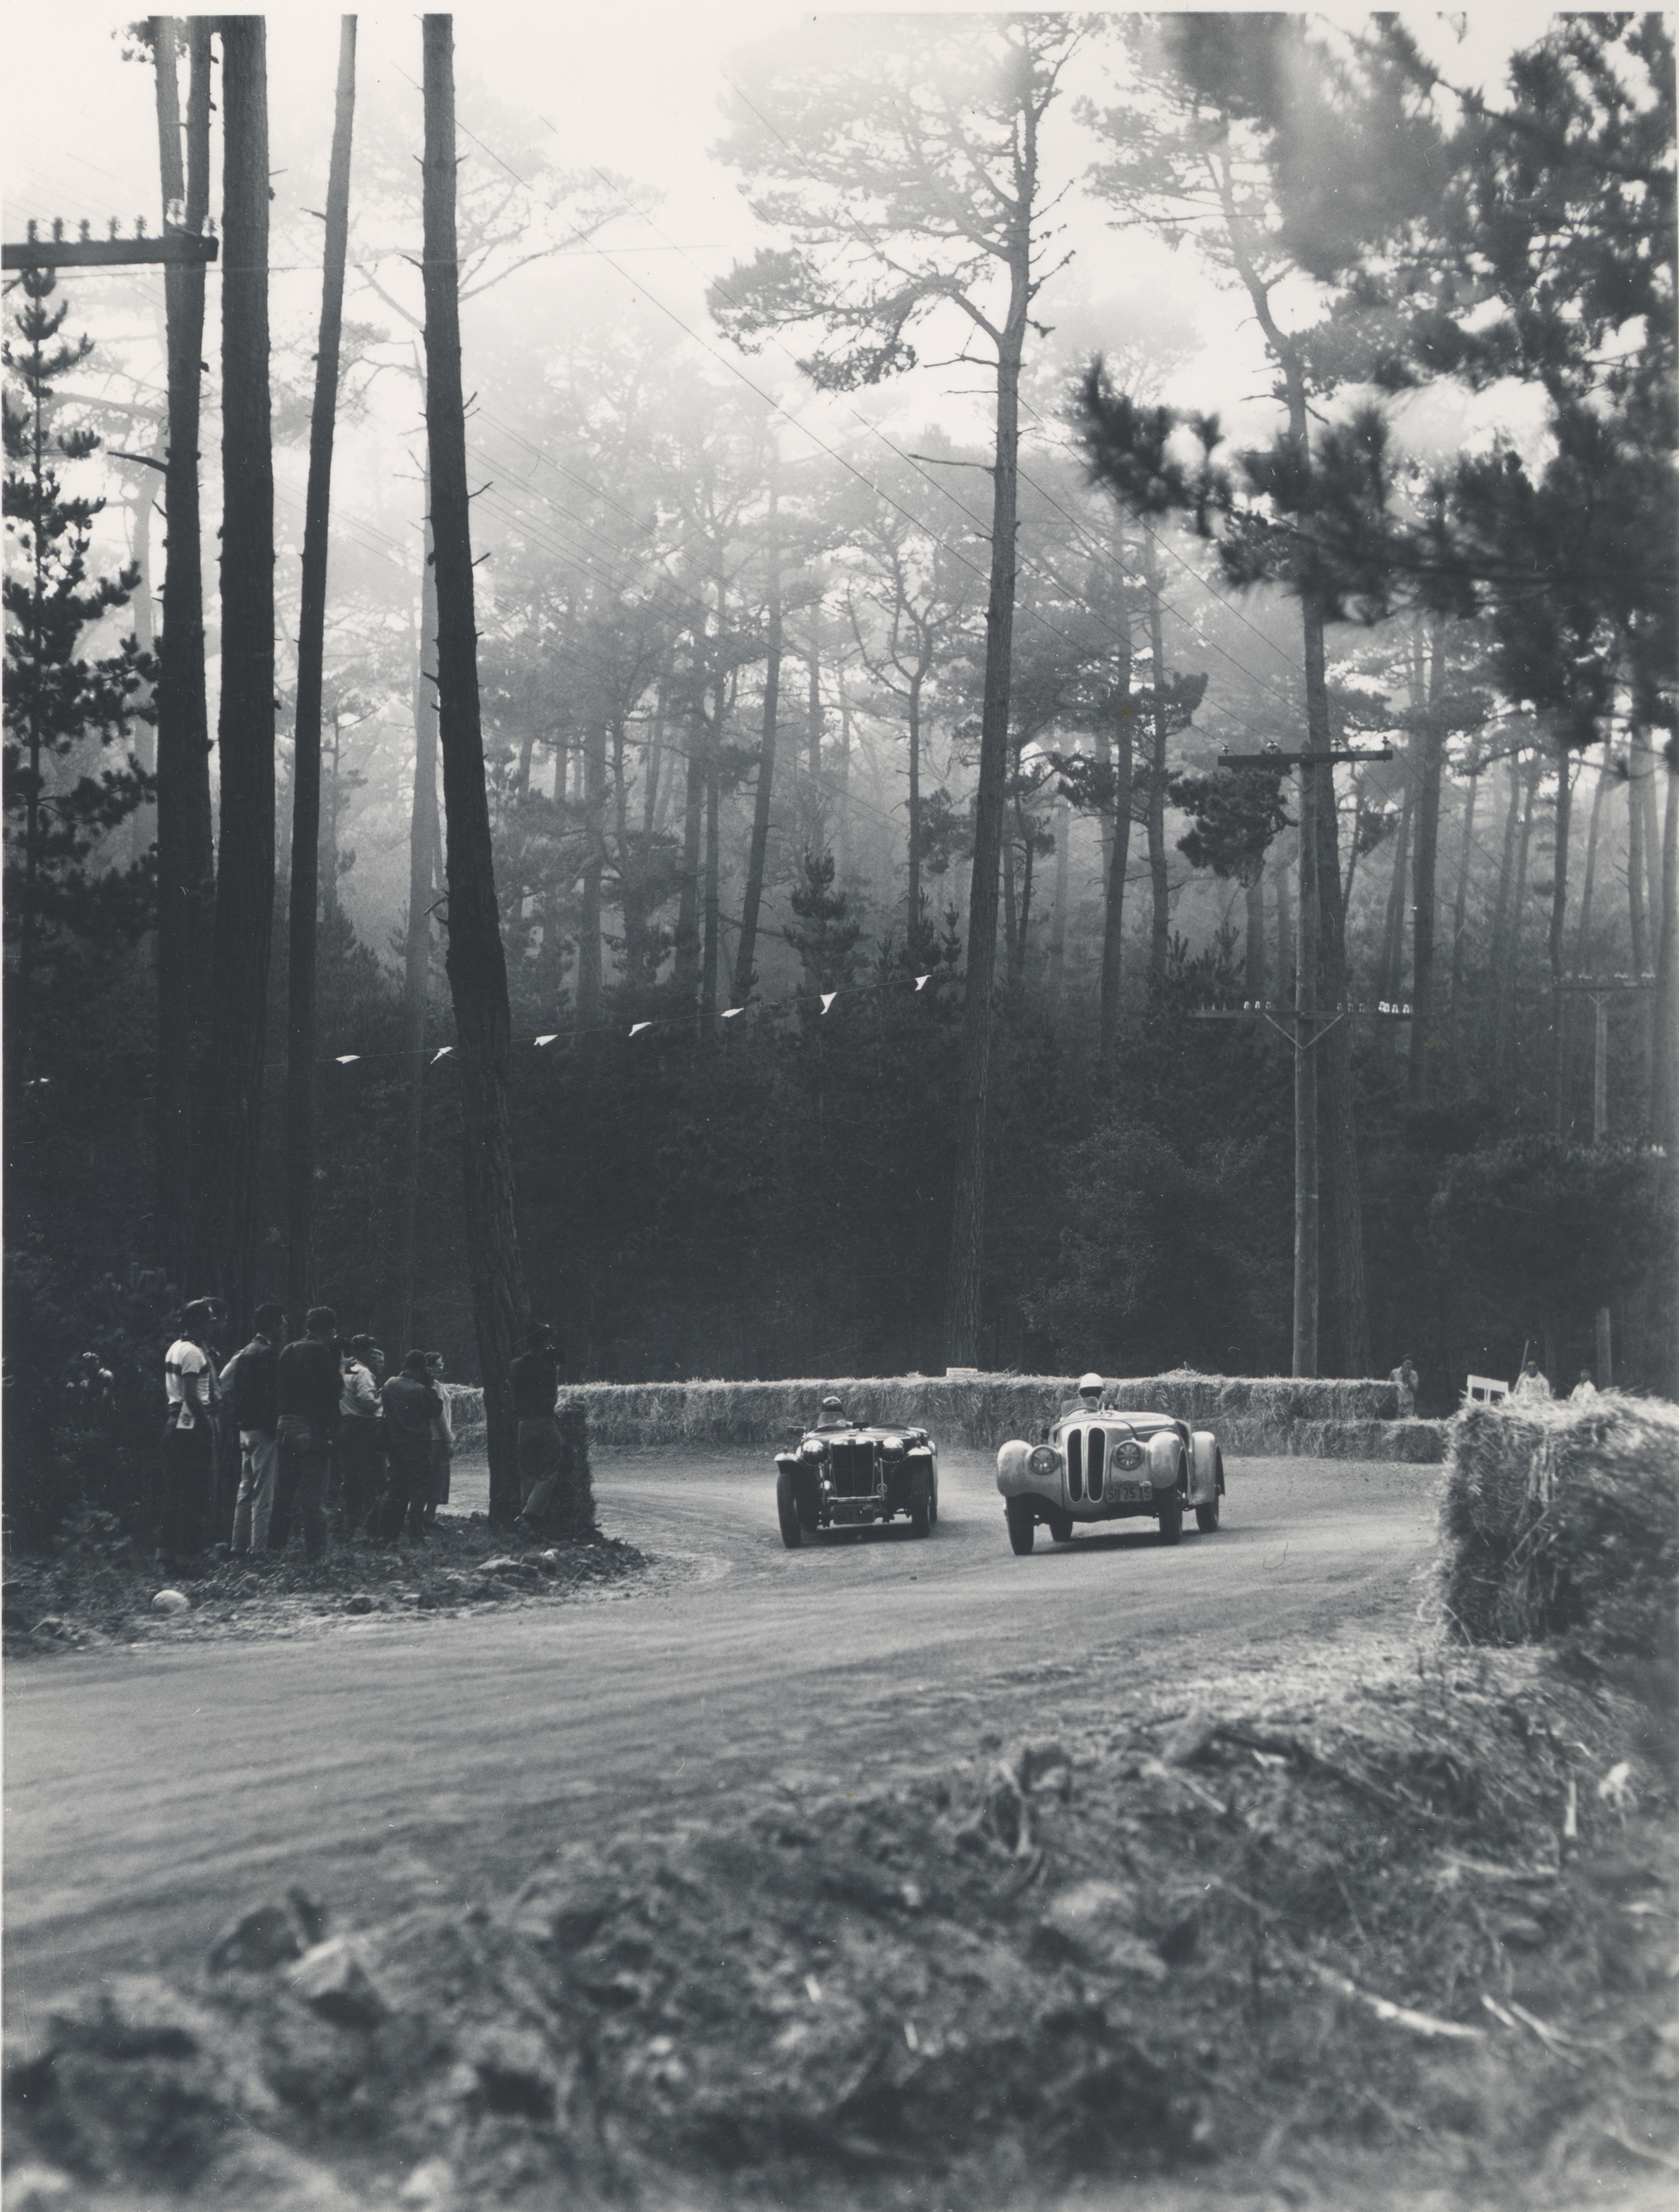 Pebble Beach Road Races